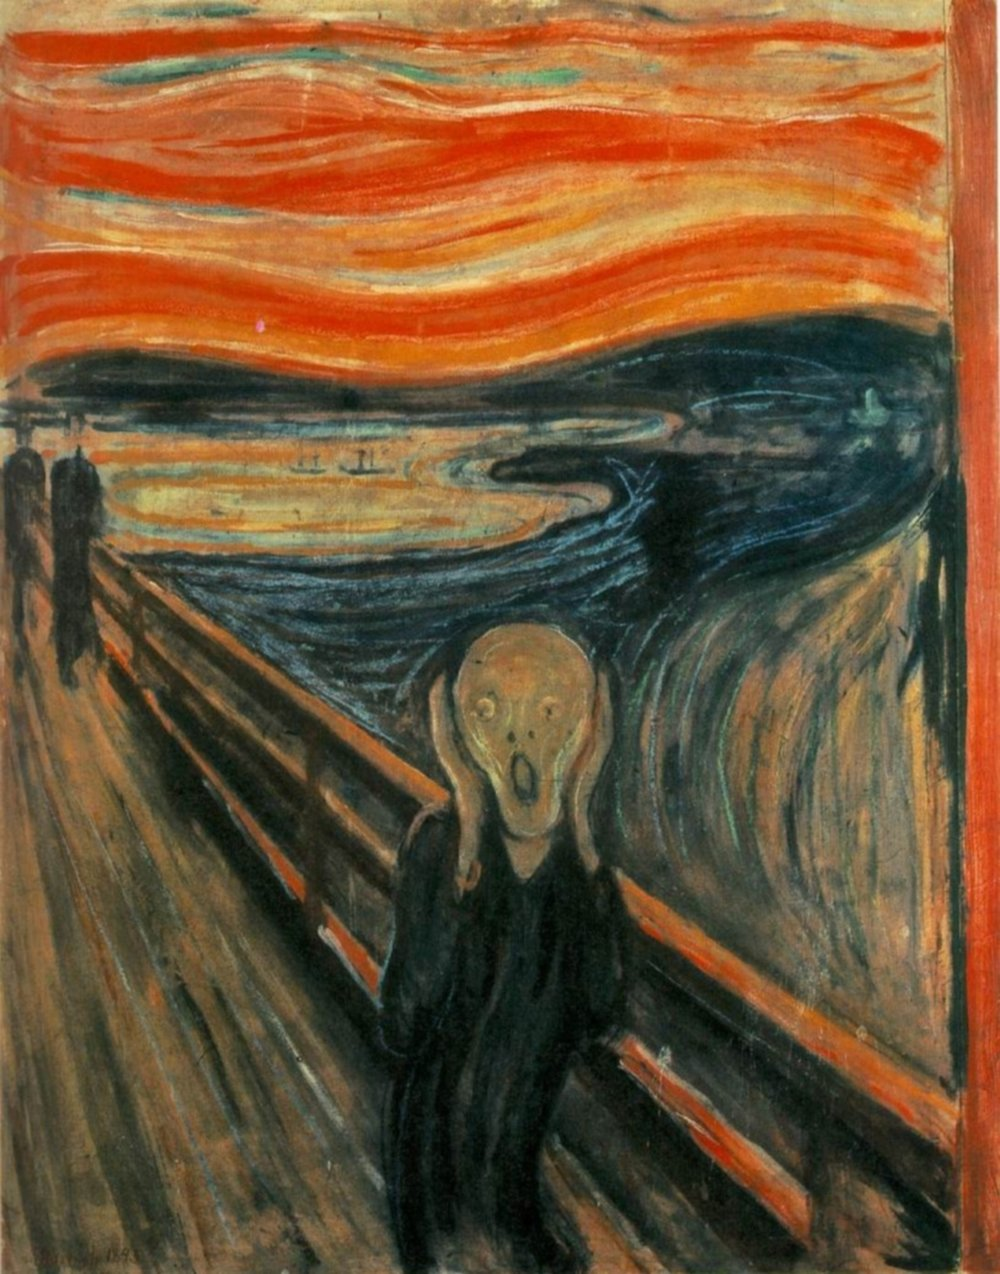 Edvard Munch's  The Scream  (1893), or the basis for the ubiquitous  Face Screaming in Fear  emoji, as some know it.